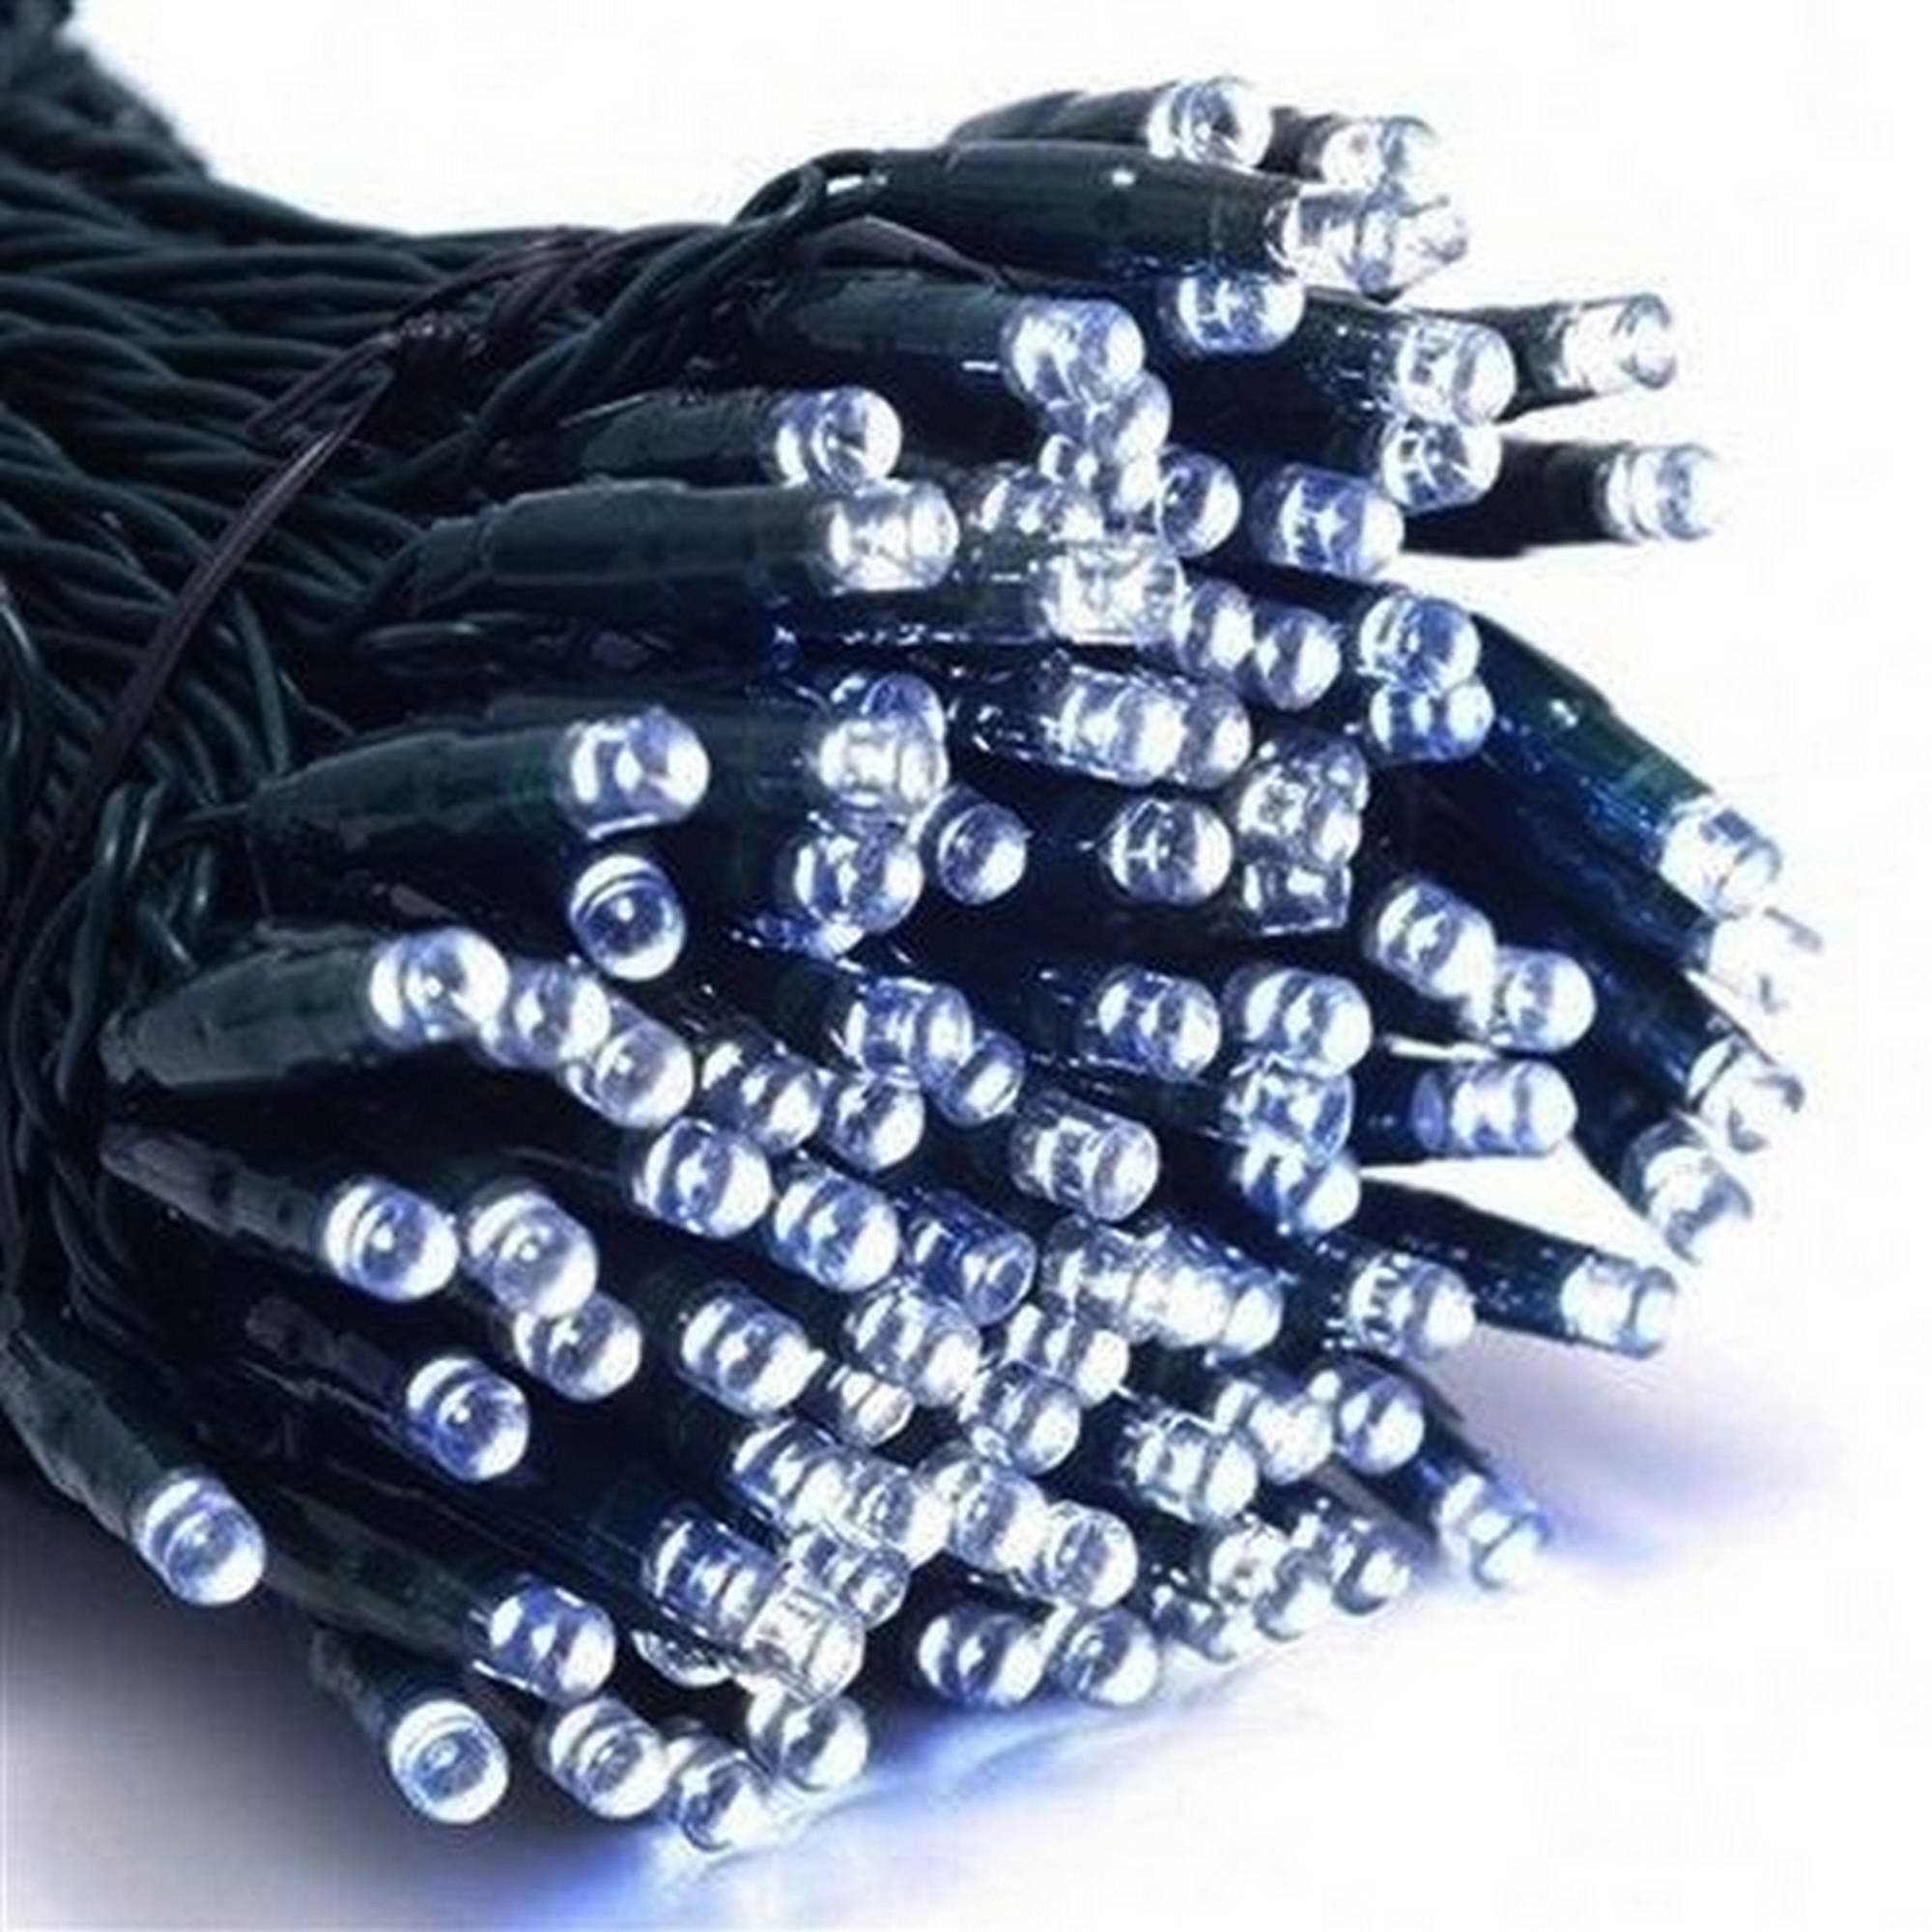 aleko 60 led solar powered christmas string lights walmartcom